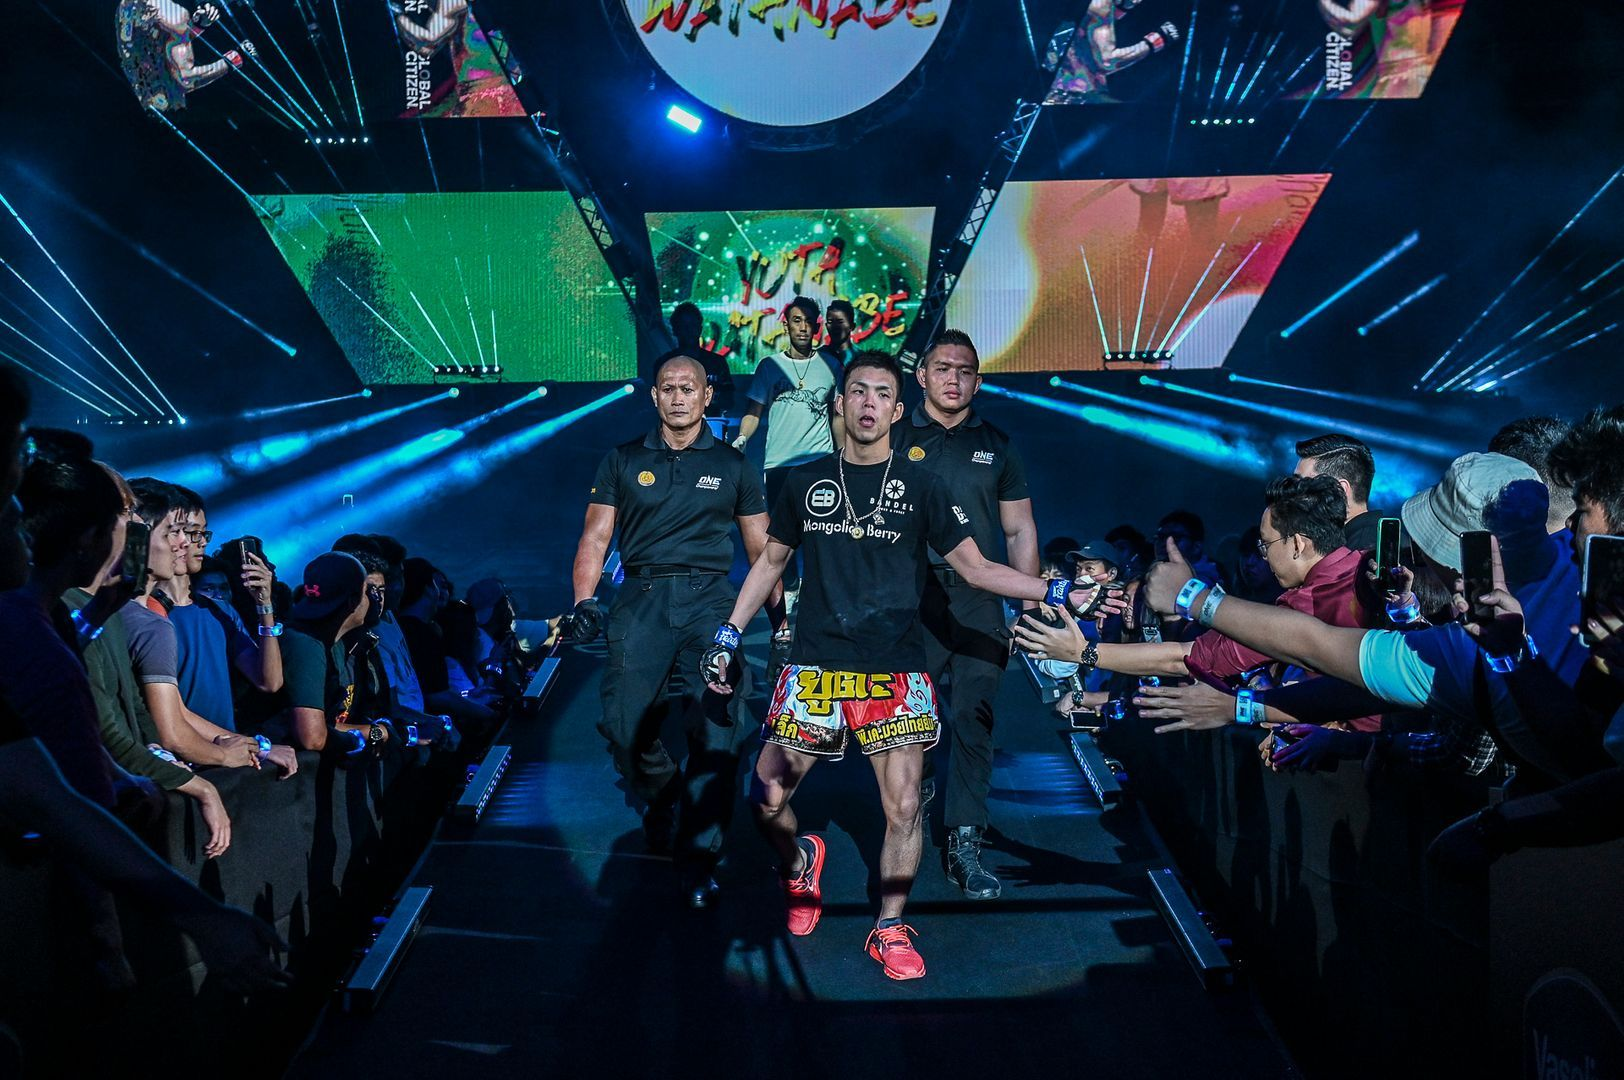 Japanese Muay Thai Fighter Yuta Watanabe enters the arena